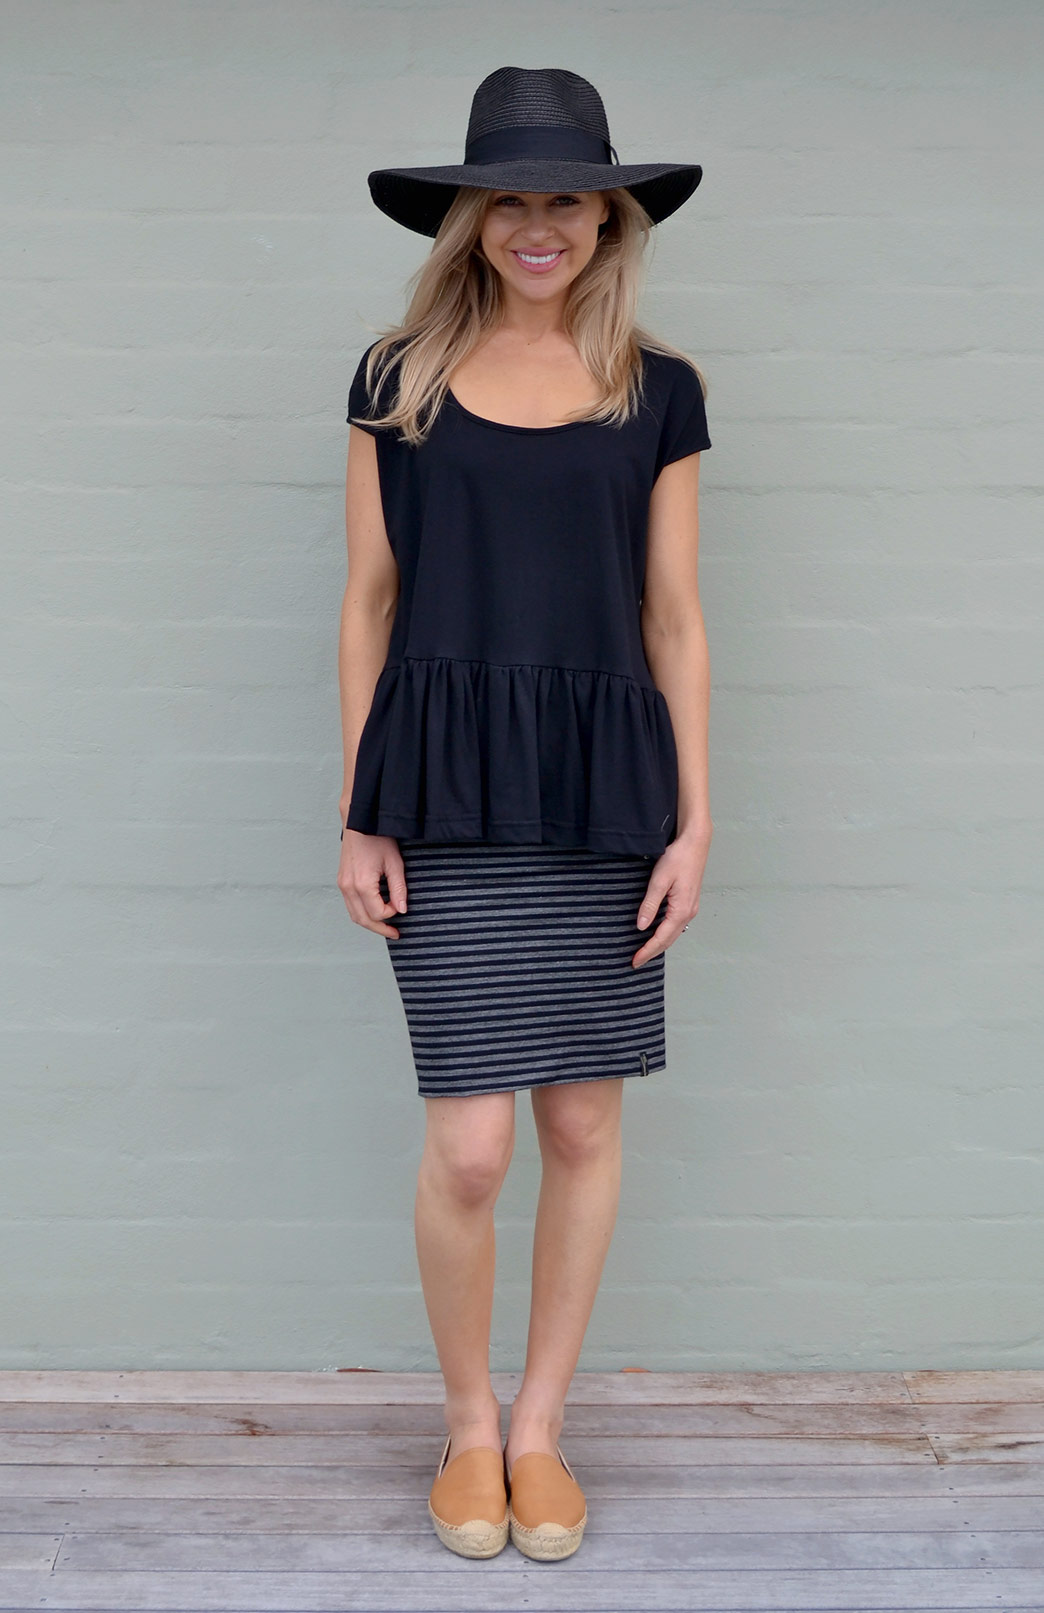 Short Tube Skirt - Striped - Women's Short Wool Mini Skirt - Smitten Merino Tasmania Australia